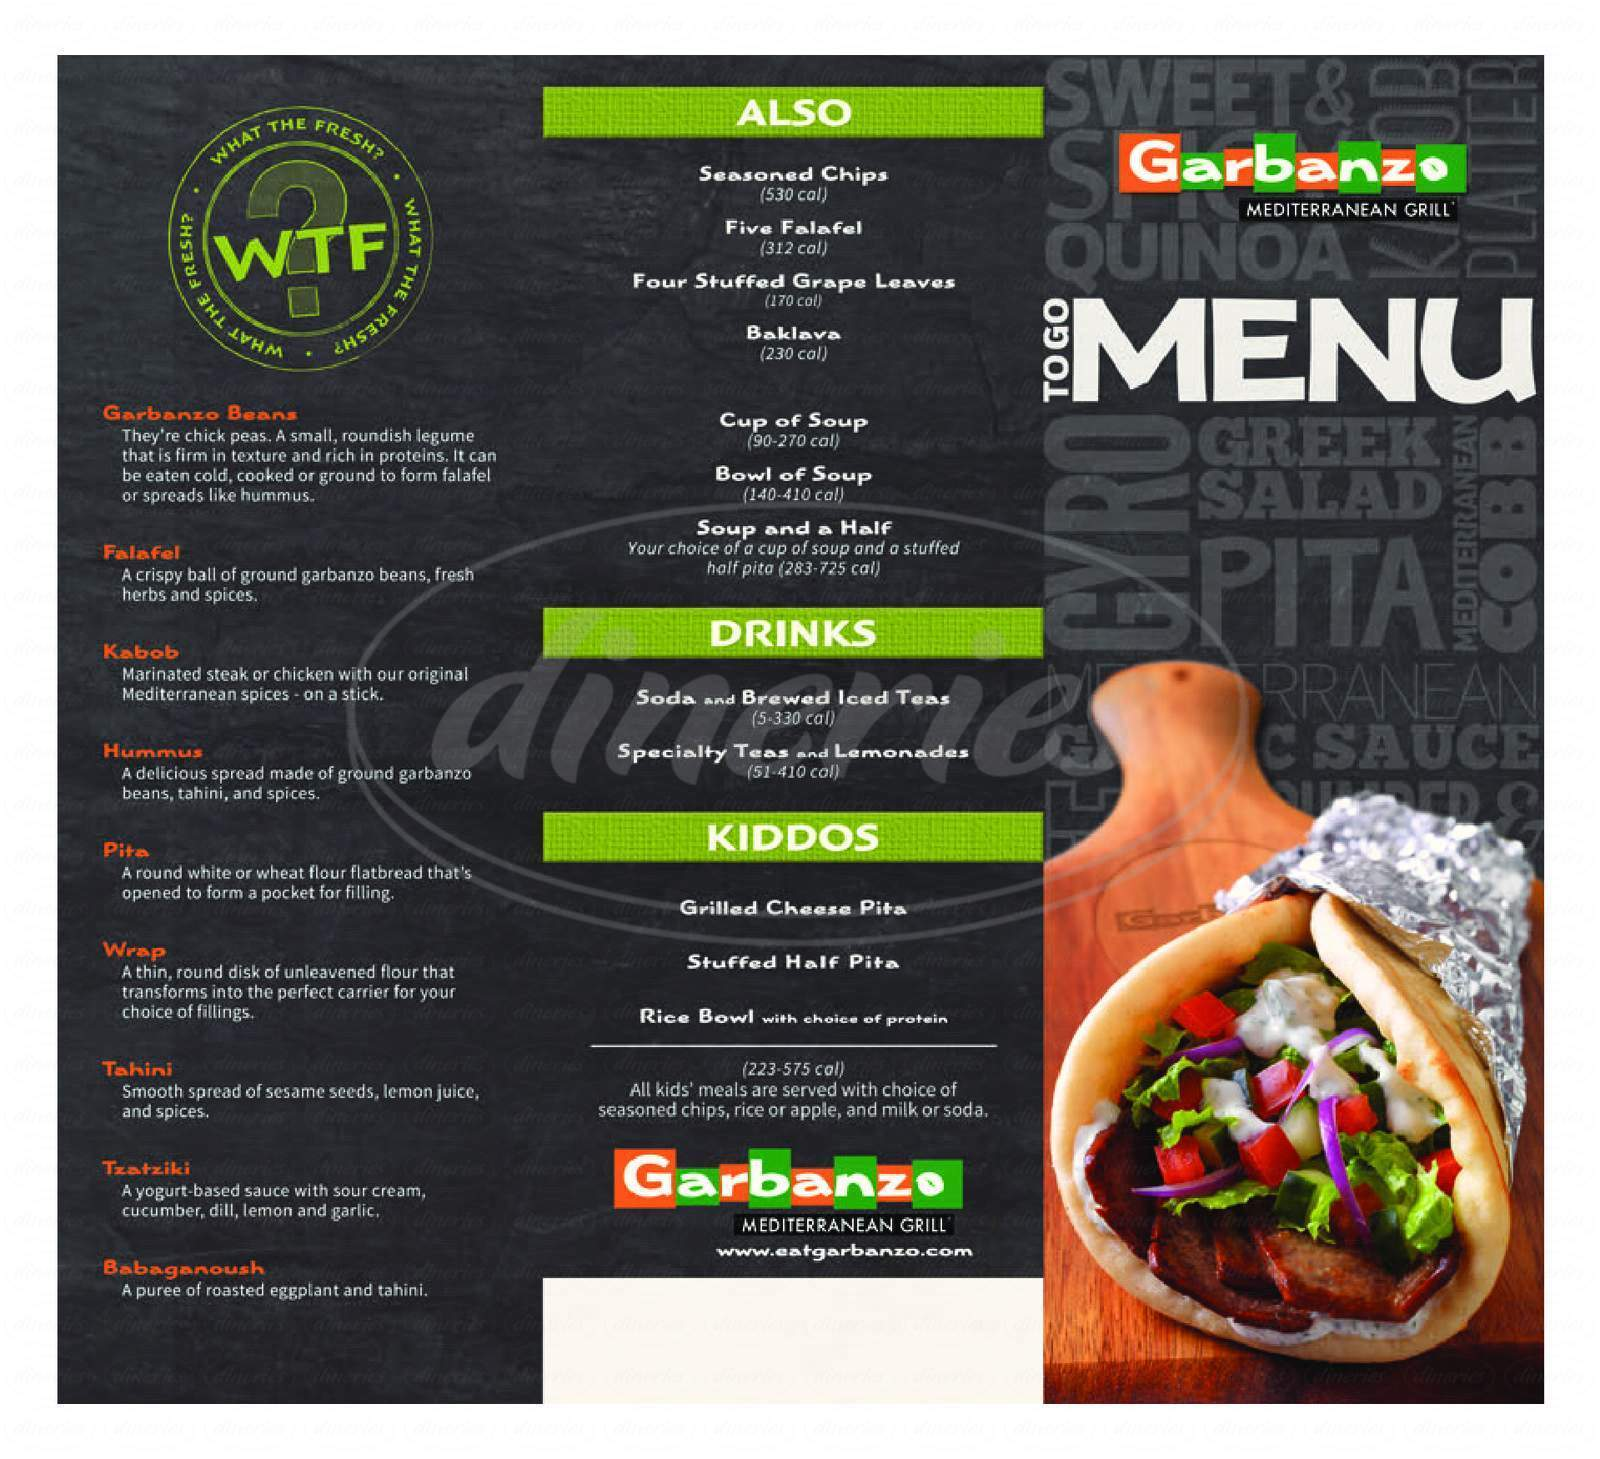 menu for Garbanzo Mediterranean Grill